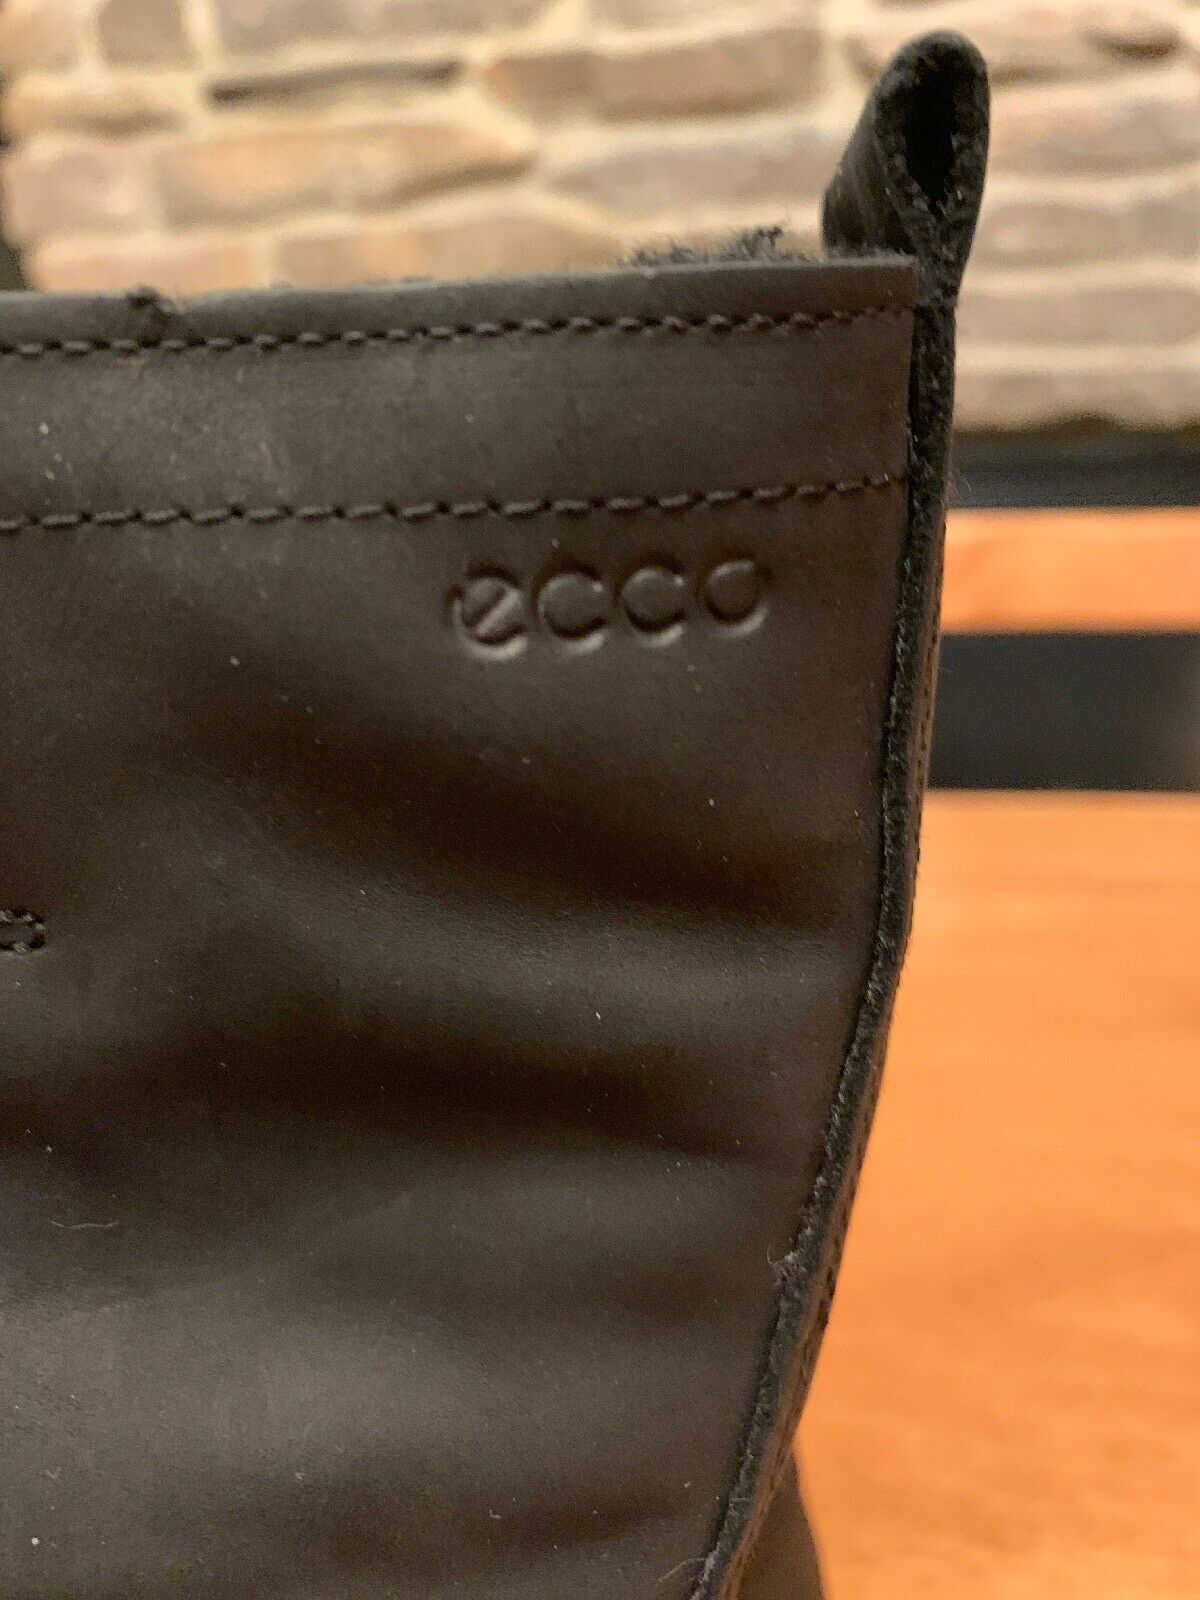 ECCO Elaine Black Leather Leather Leather Boots W  Strap, Buckle & Wool Lining Size 4   4.5 7924fe